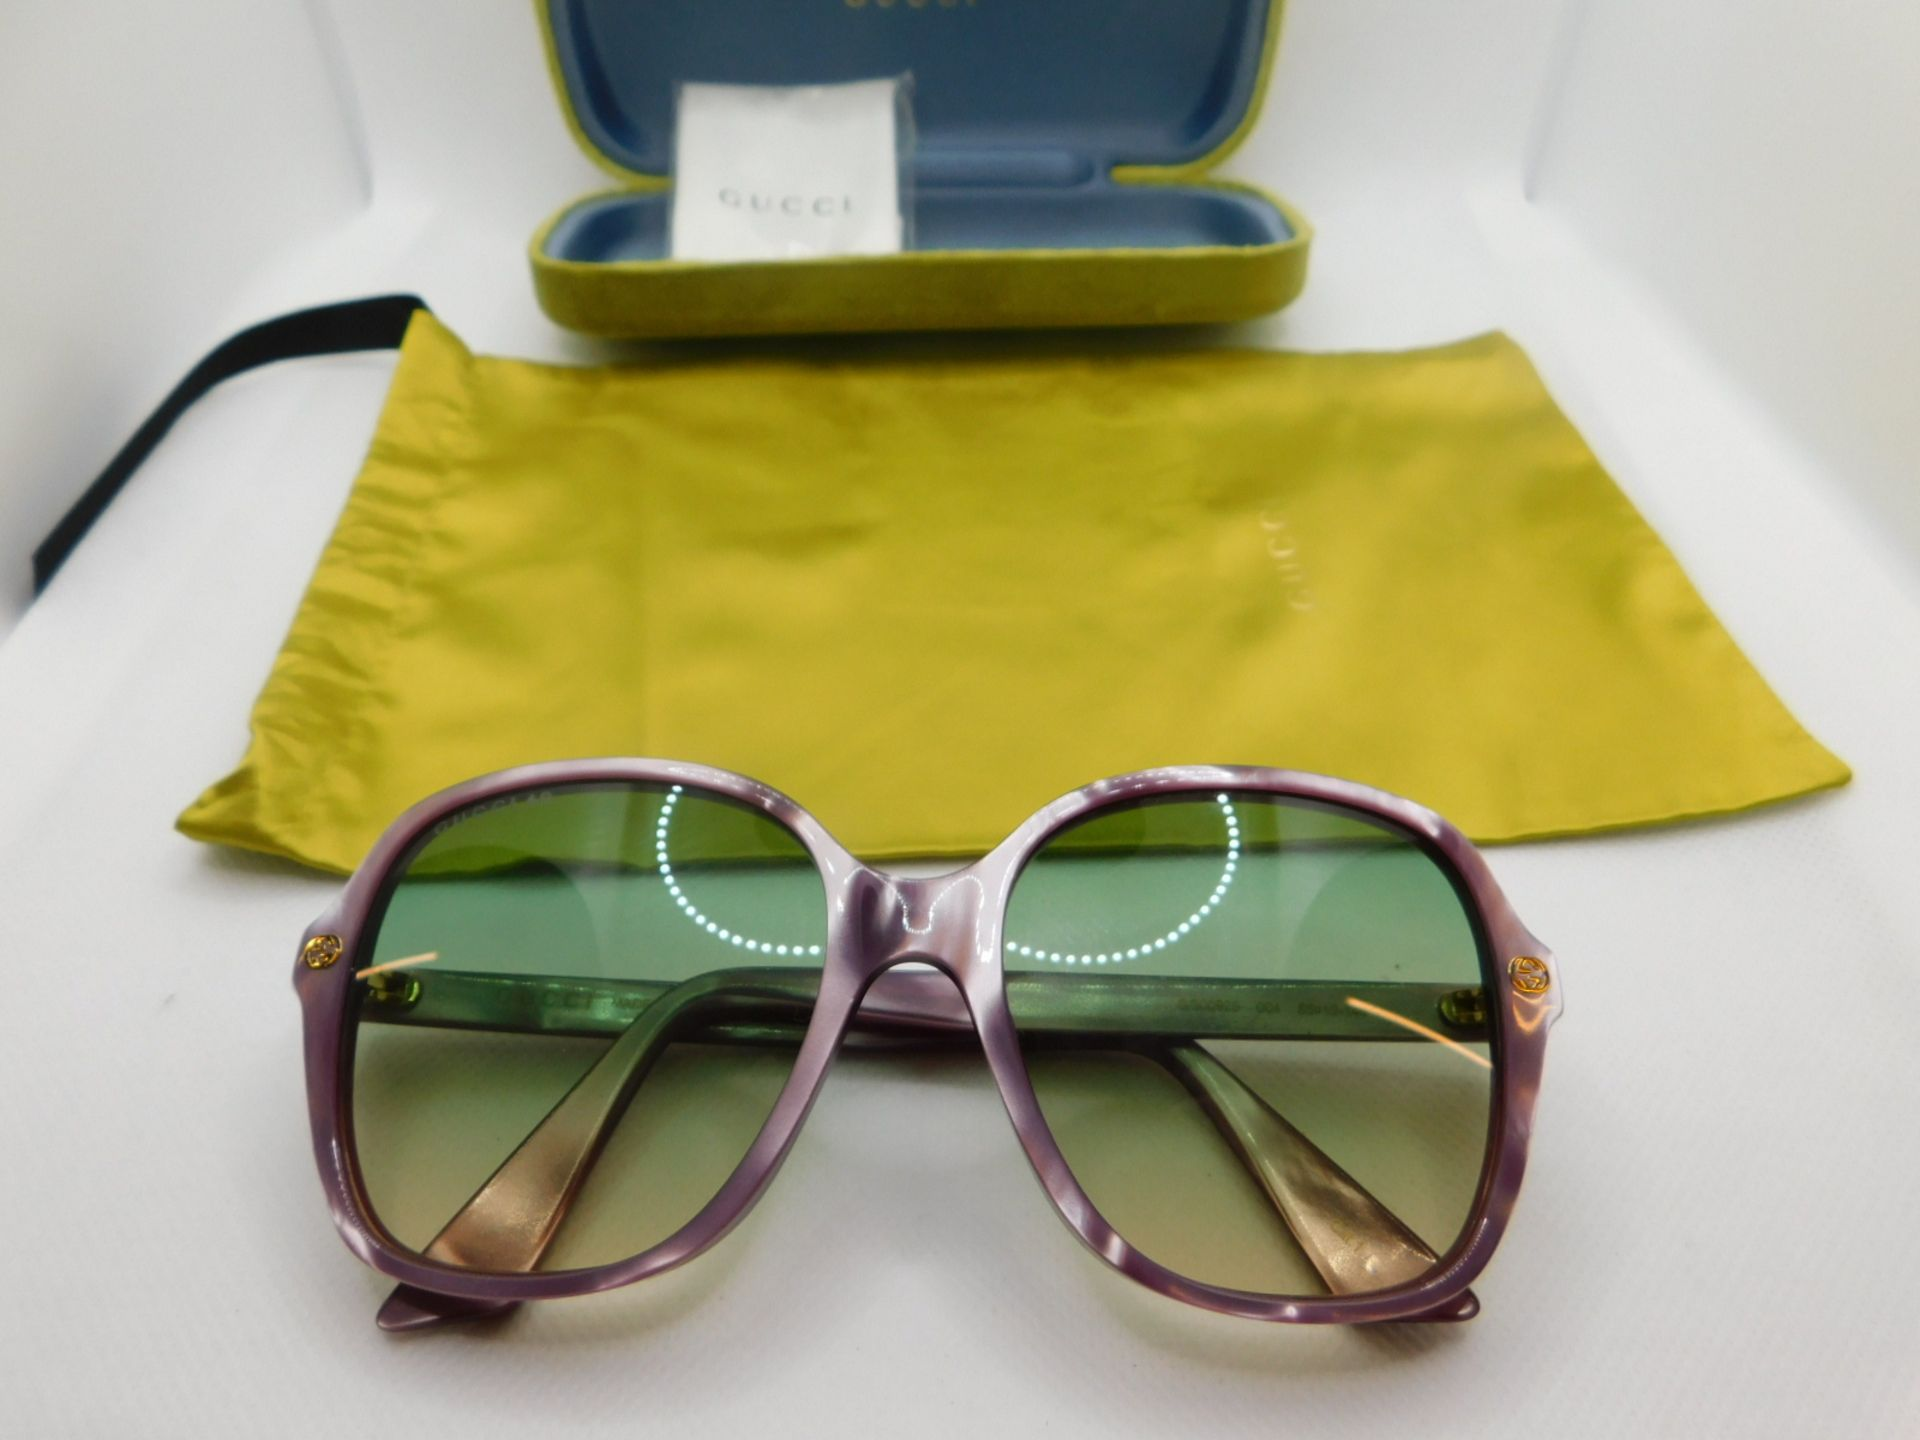 1 PAIR OF GUCCI LADIES SUNGLASSES FRAME WITH CASE AND POUCH MODEL GG0092S RRP £199